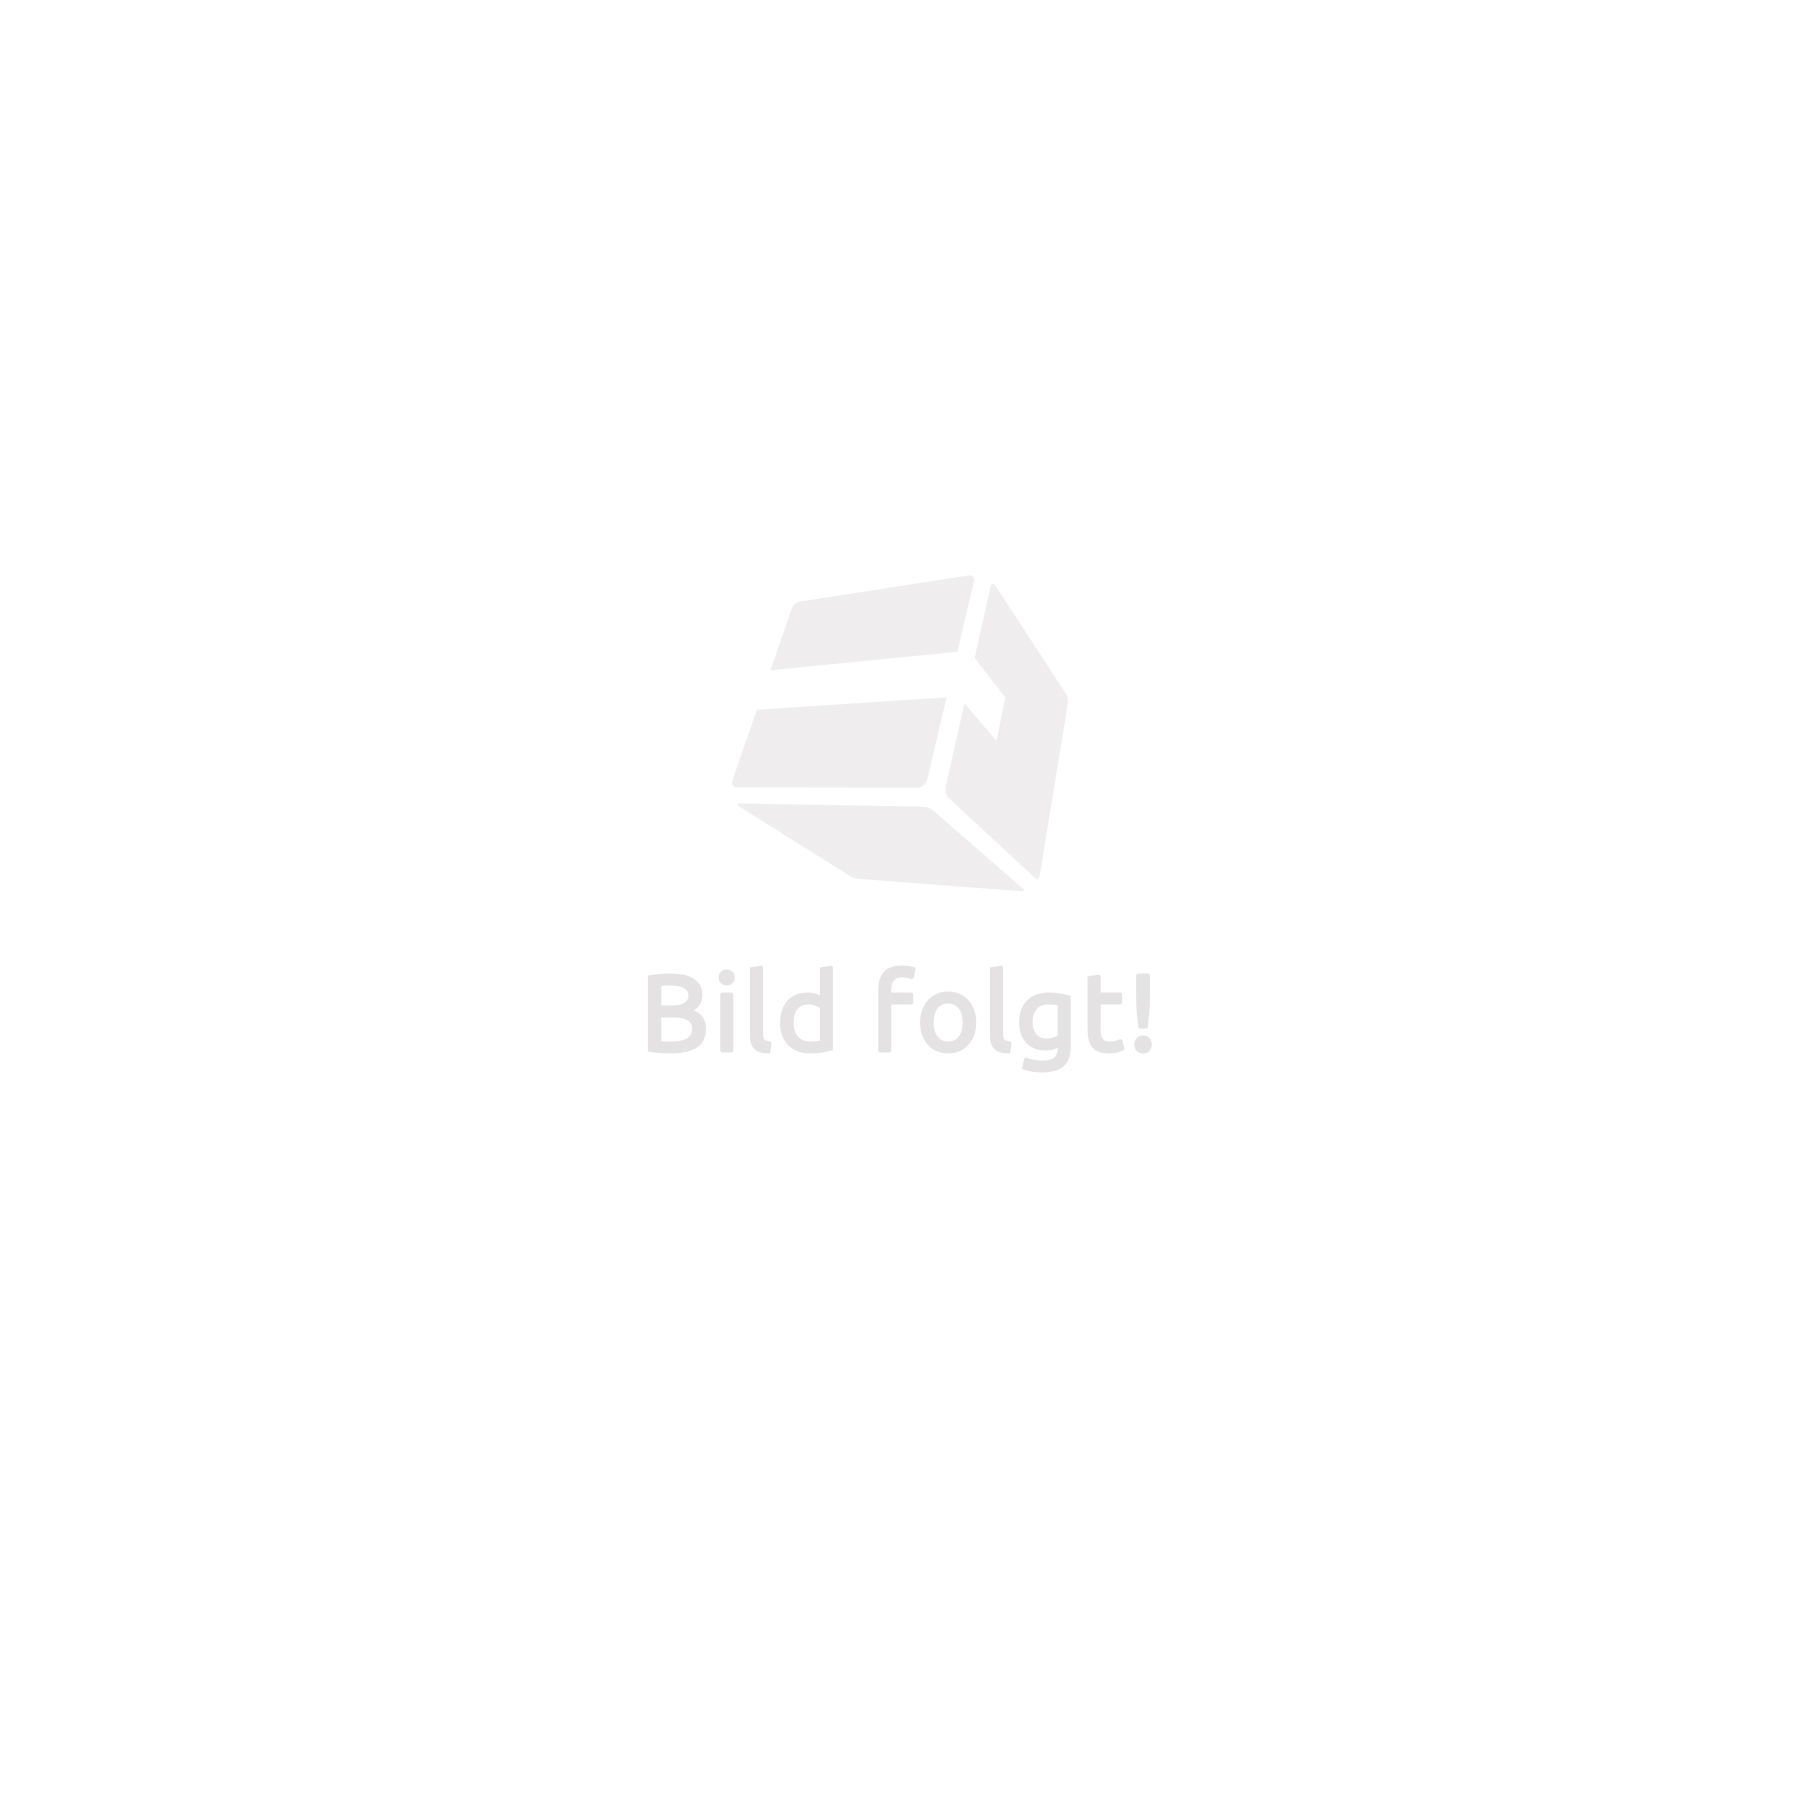 Trolley Valise Esthétique, Manucure, Maquillage rouge